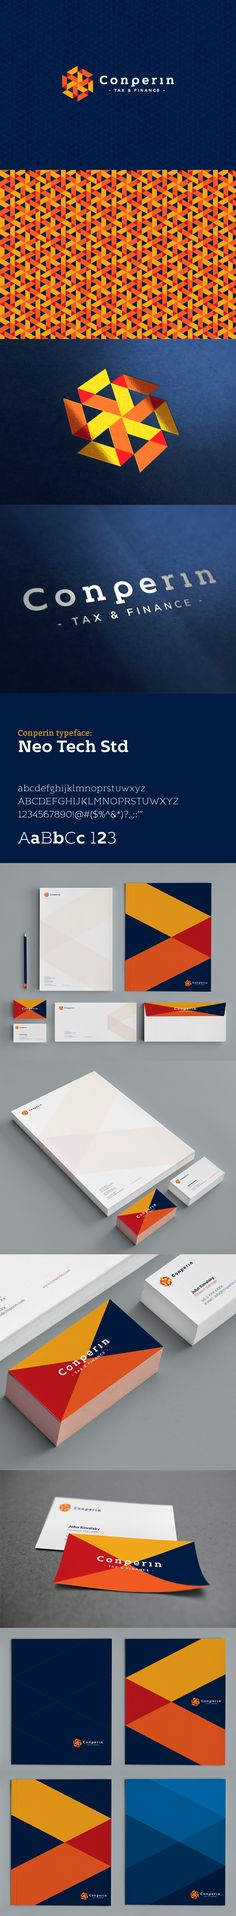 Branding - logo, stationery and collateral suite. Orange and blue colors. Nice.